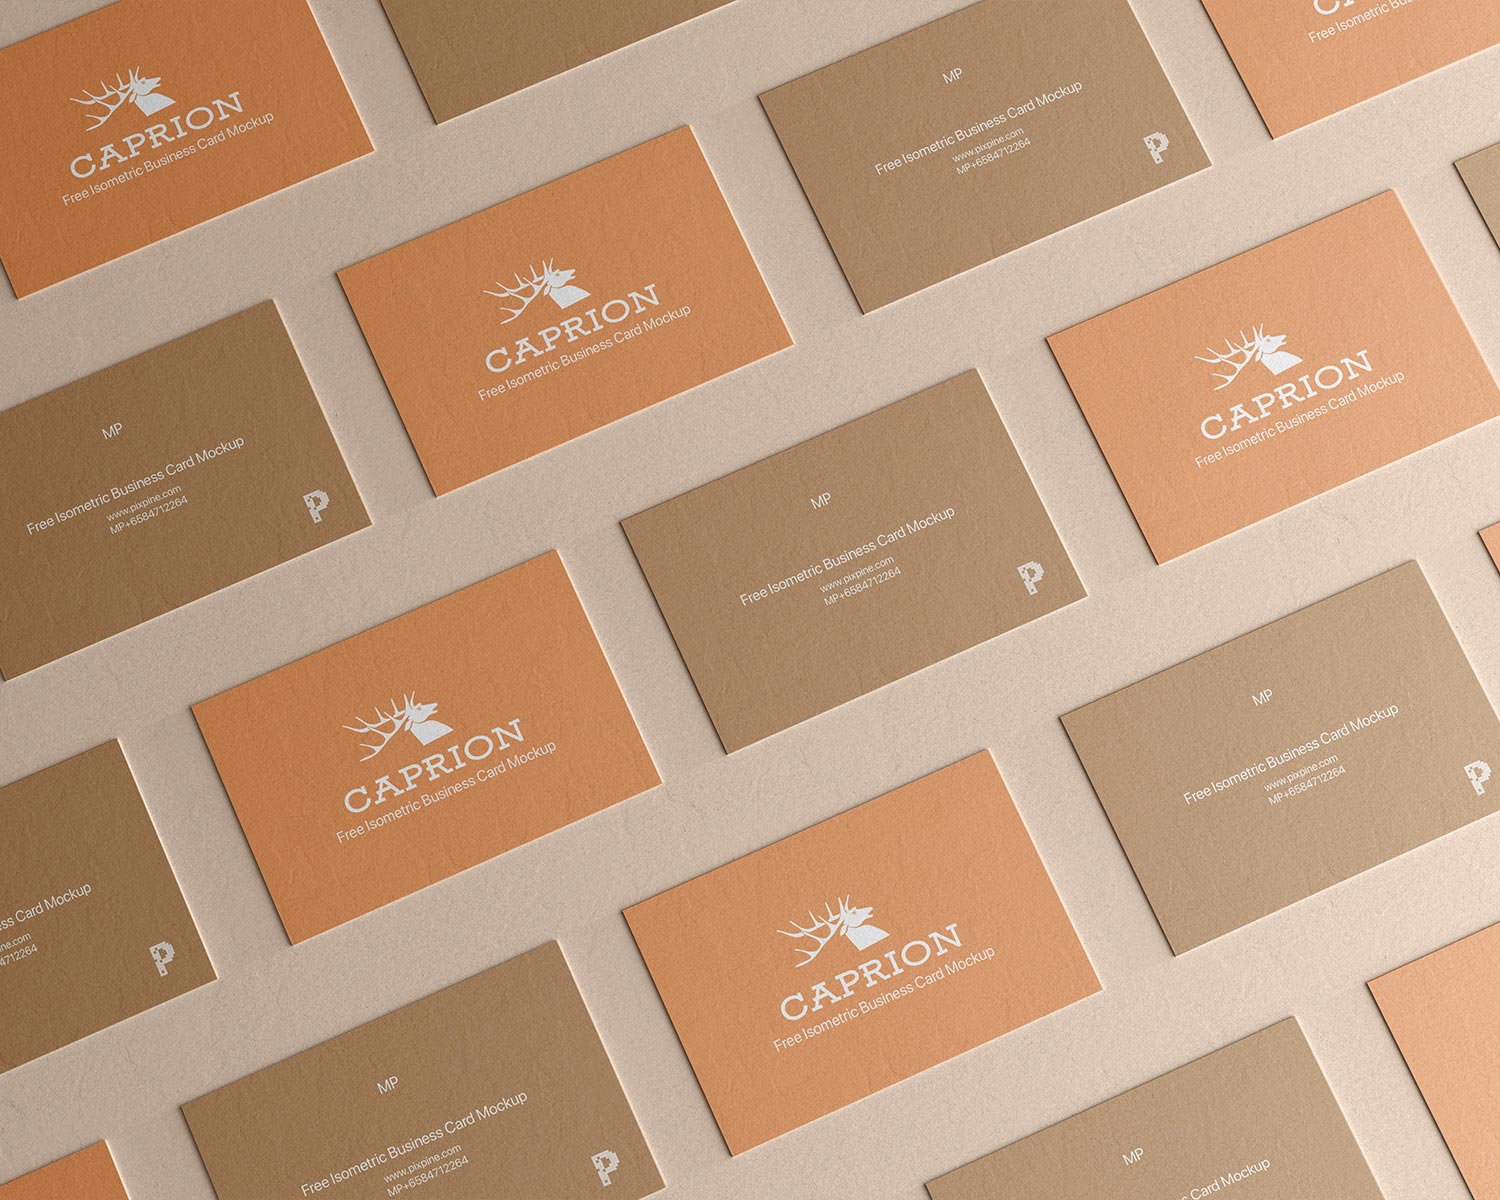 Free-Grid-Business-Card-Mockup-PSD